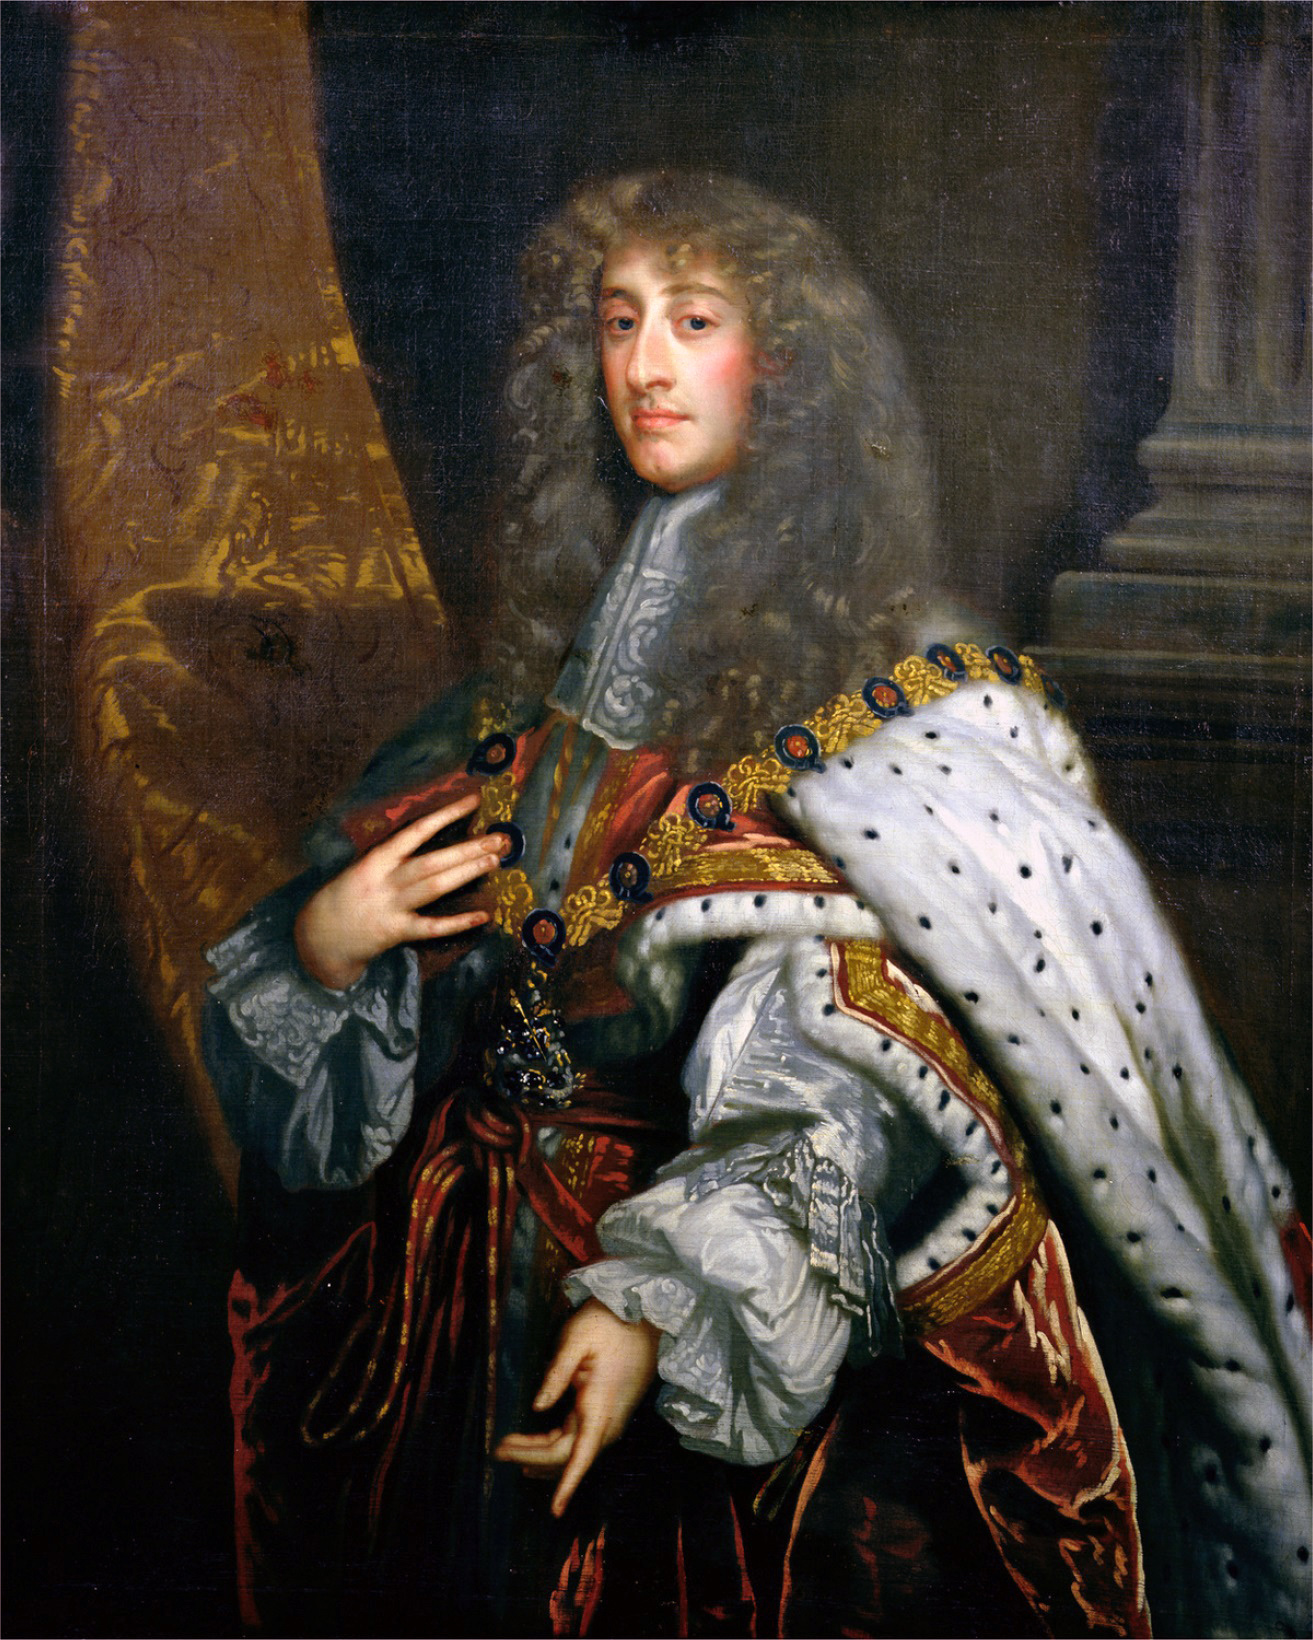 http://upload.wikimedia.org/wikipedia/commons/9/99/James_II_by_Peter_Lely.jpg